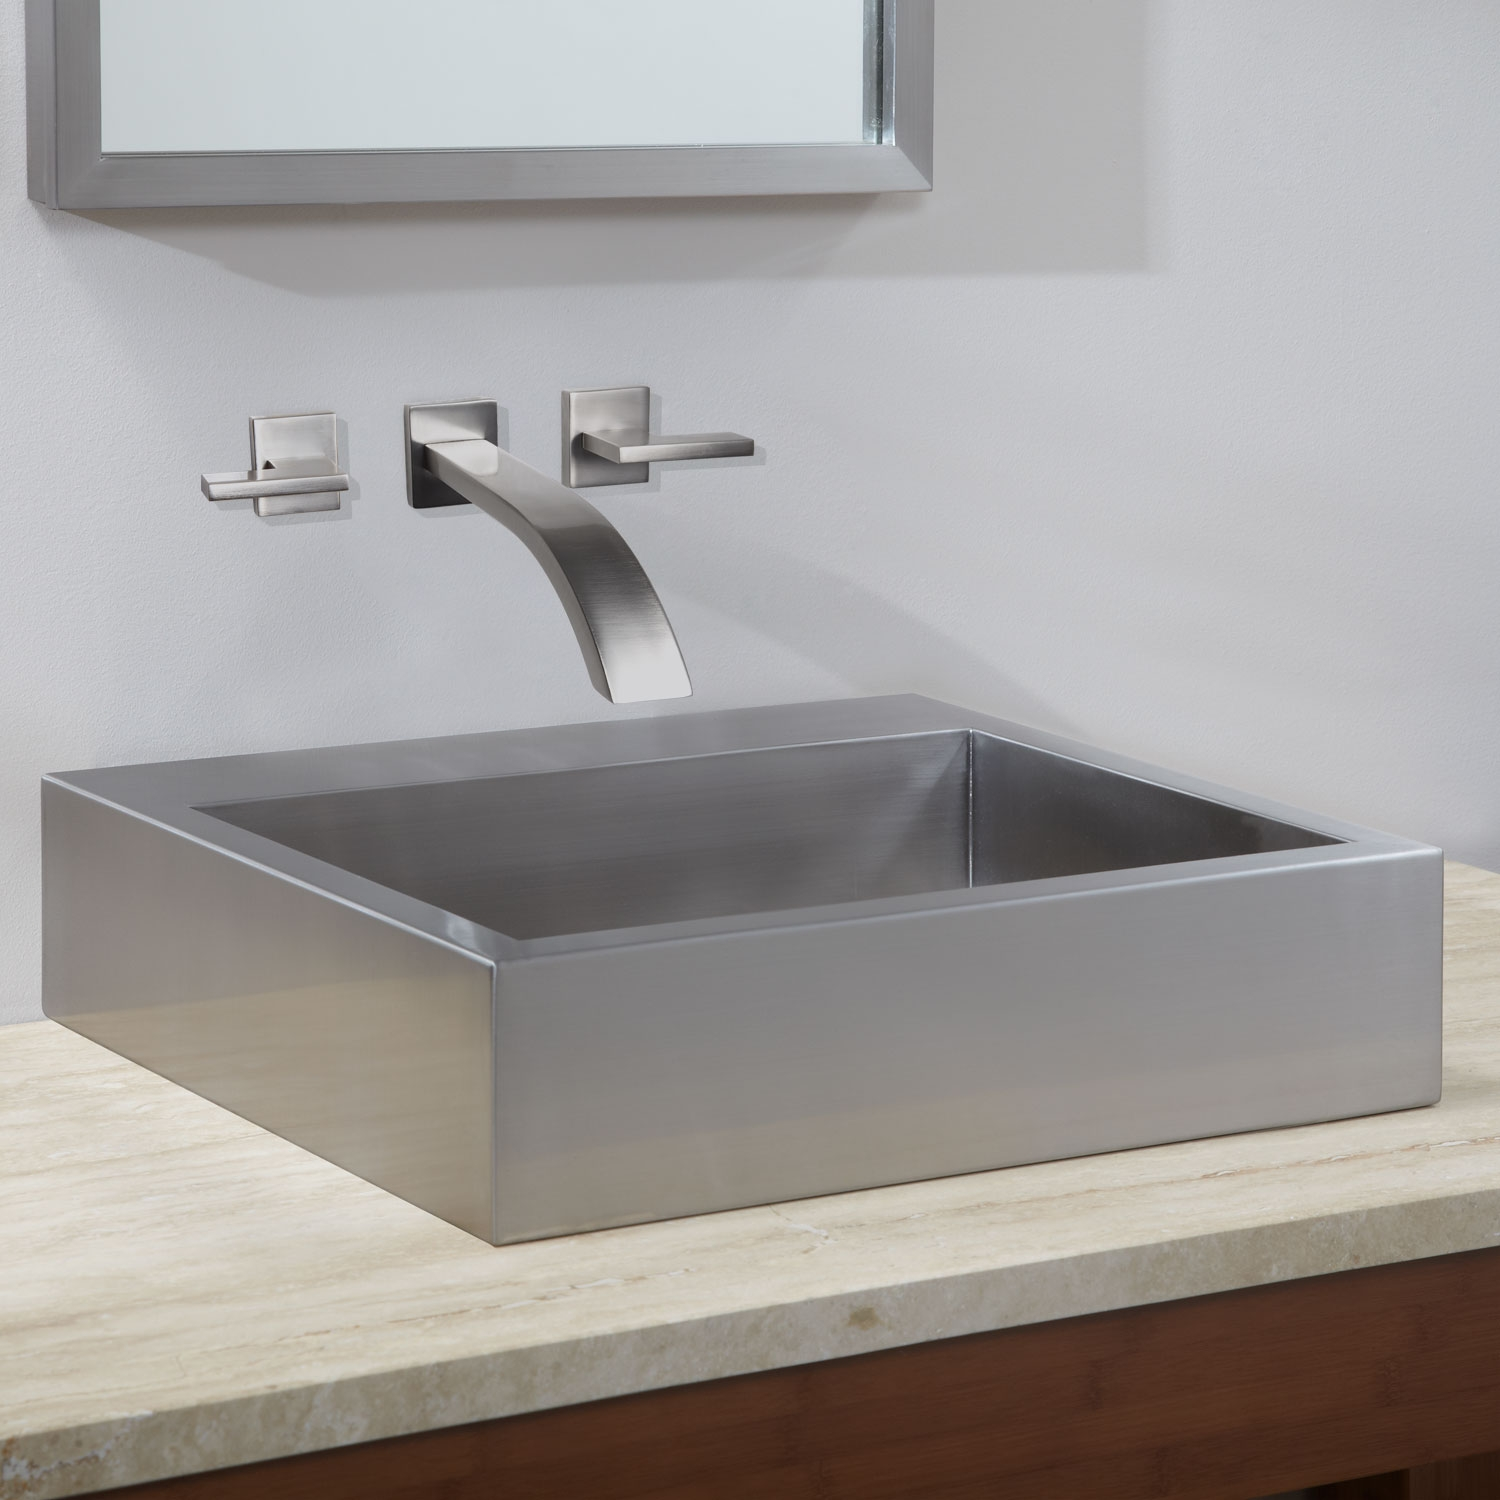 Ideas, square vessel sinks with faucets square vessel sinks with faucets square bathroom sink signature hardware 1500 x 1500  .